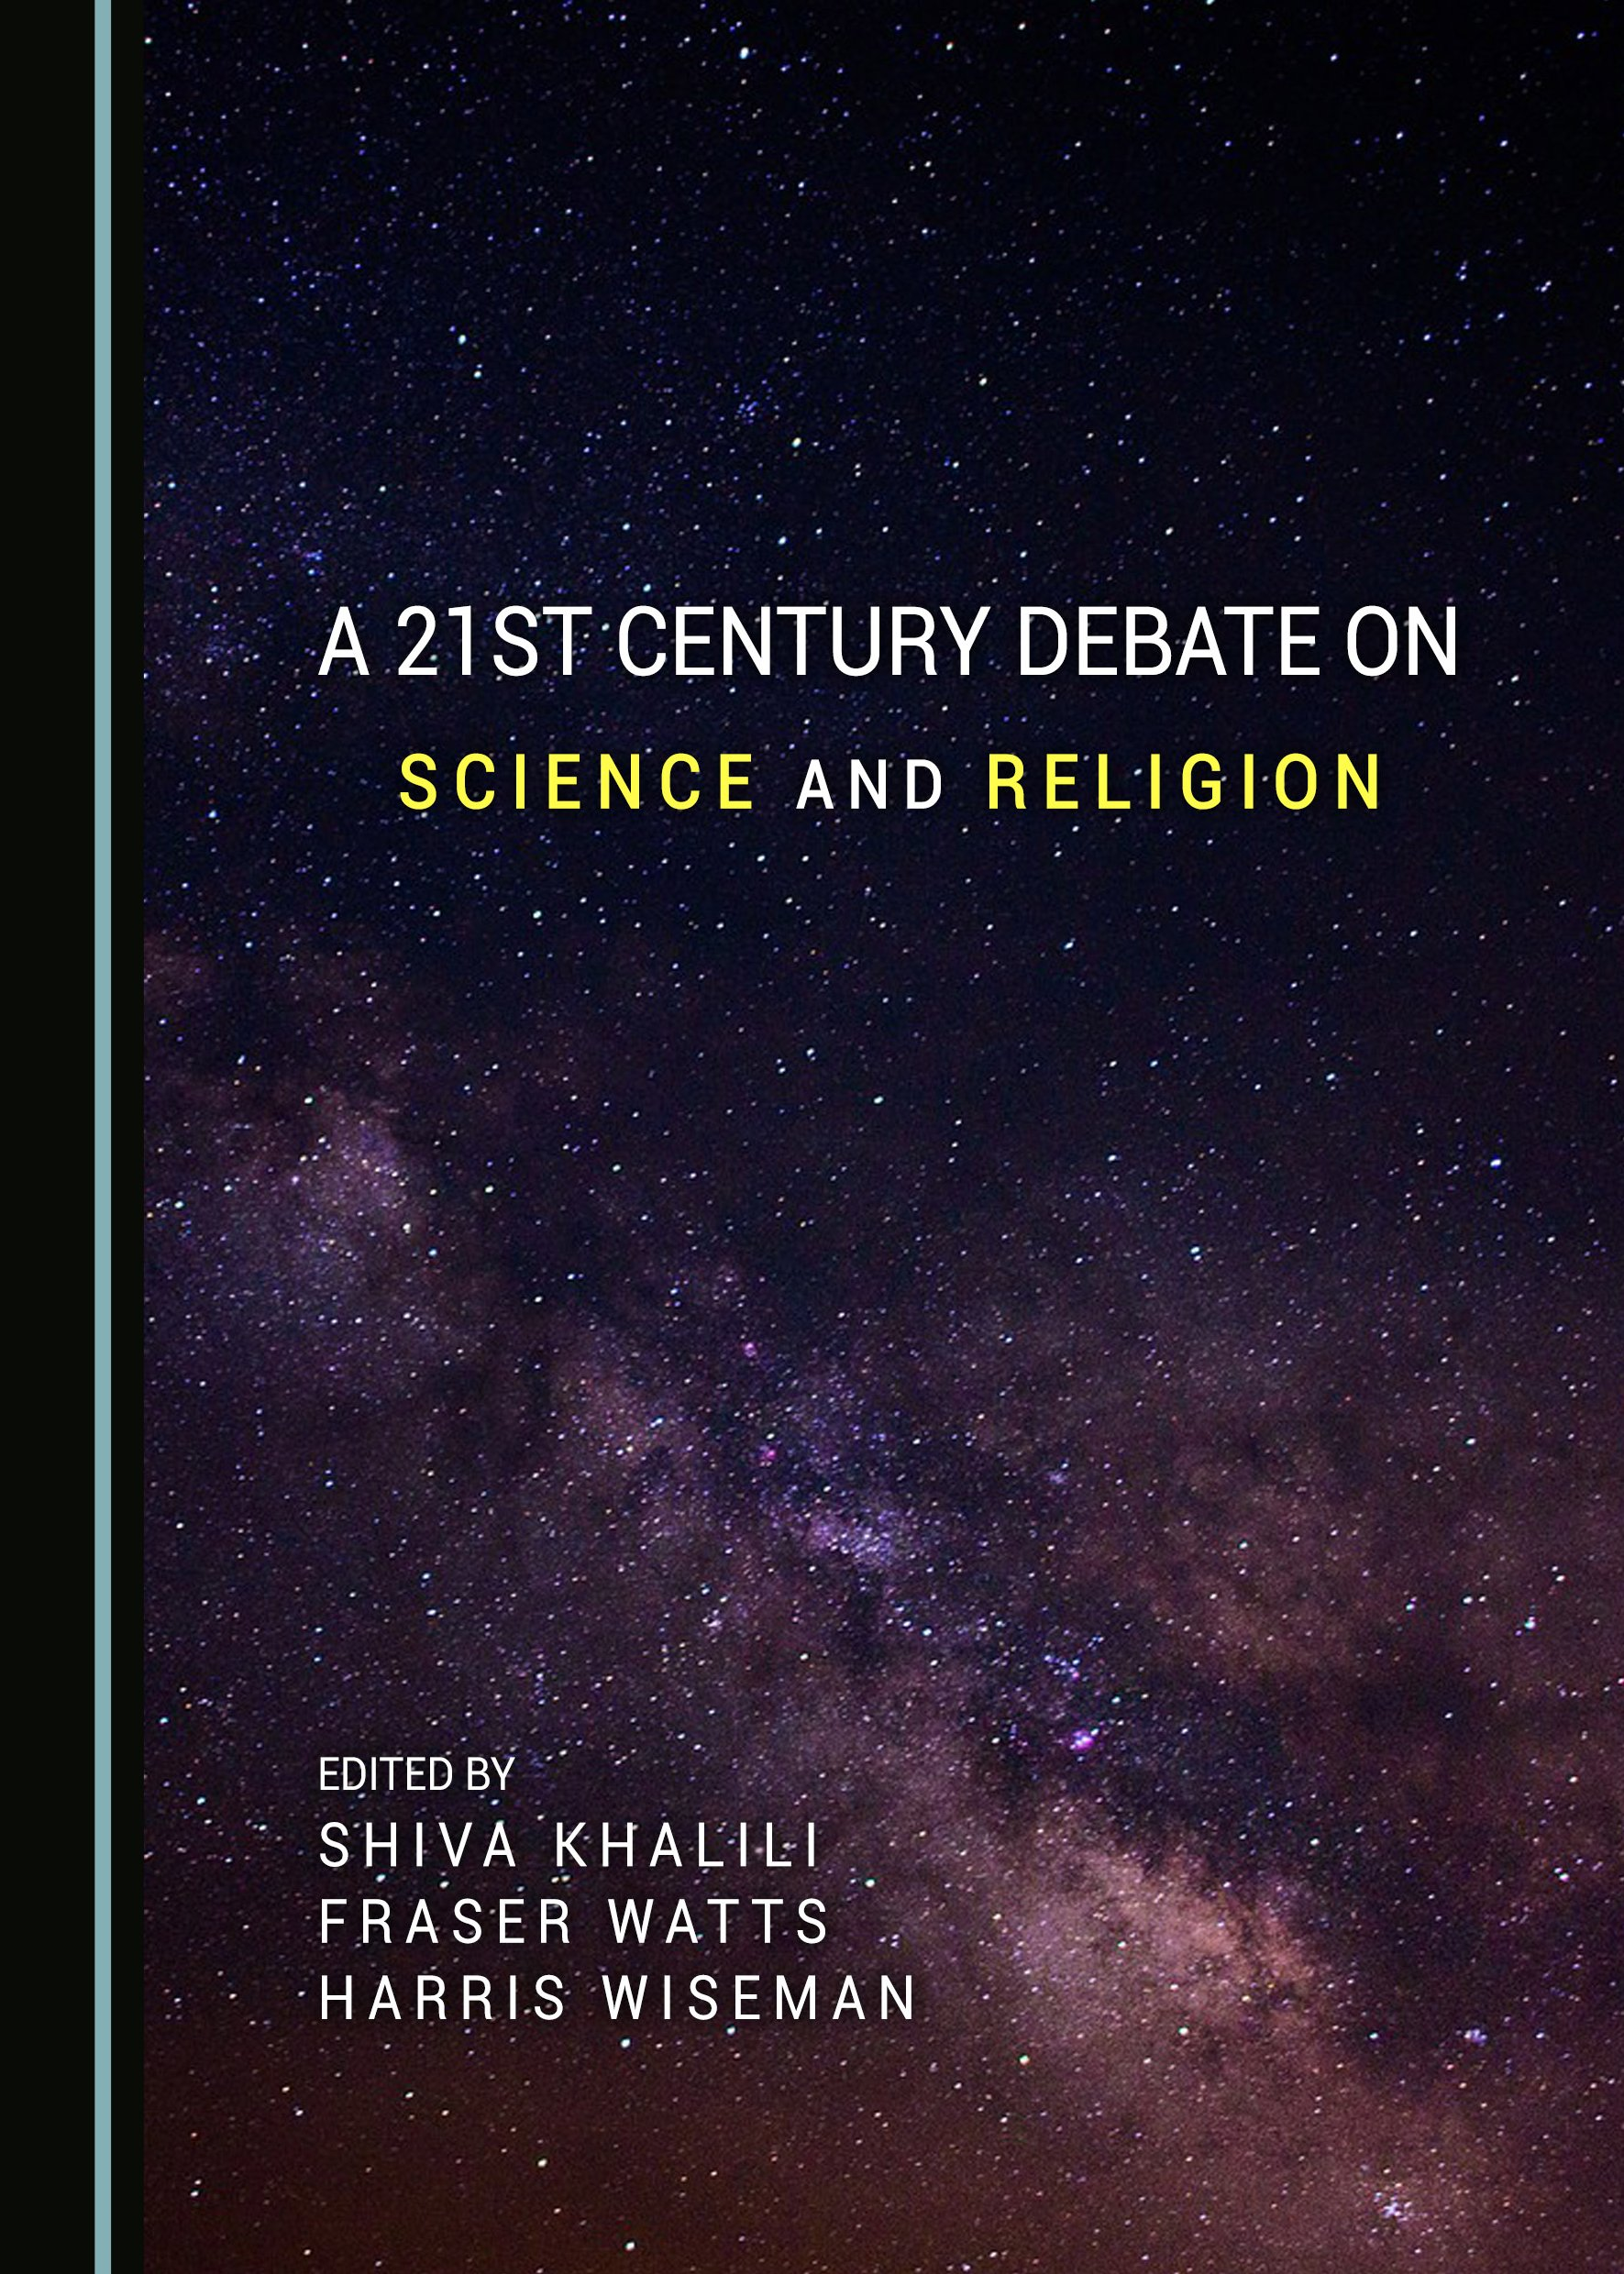 A 21st Century Debate on Science and Religion